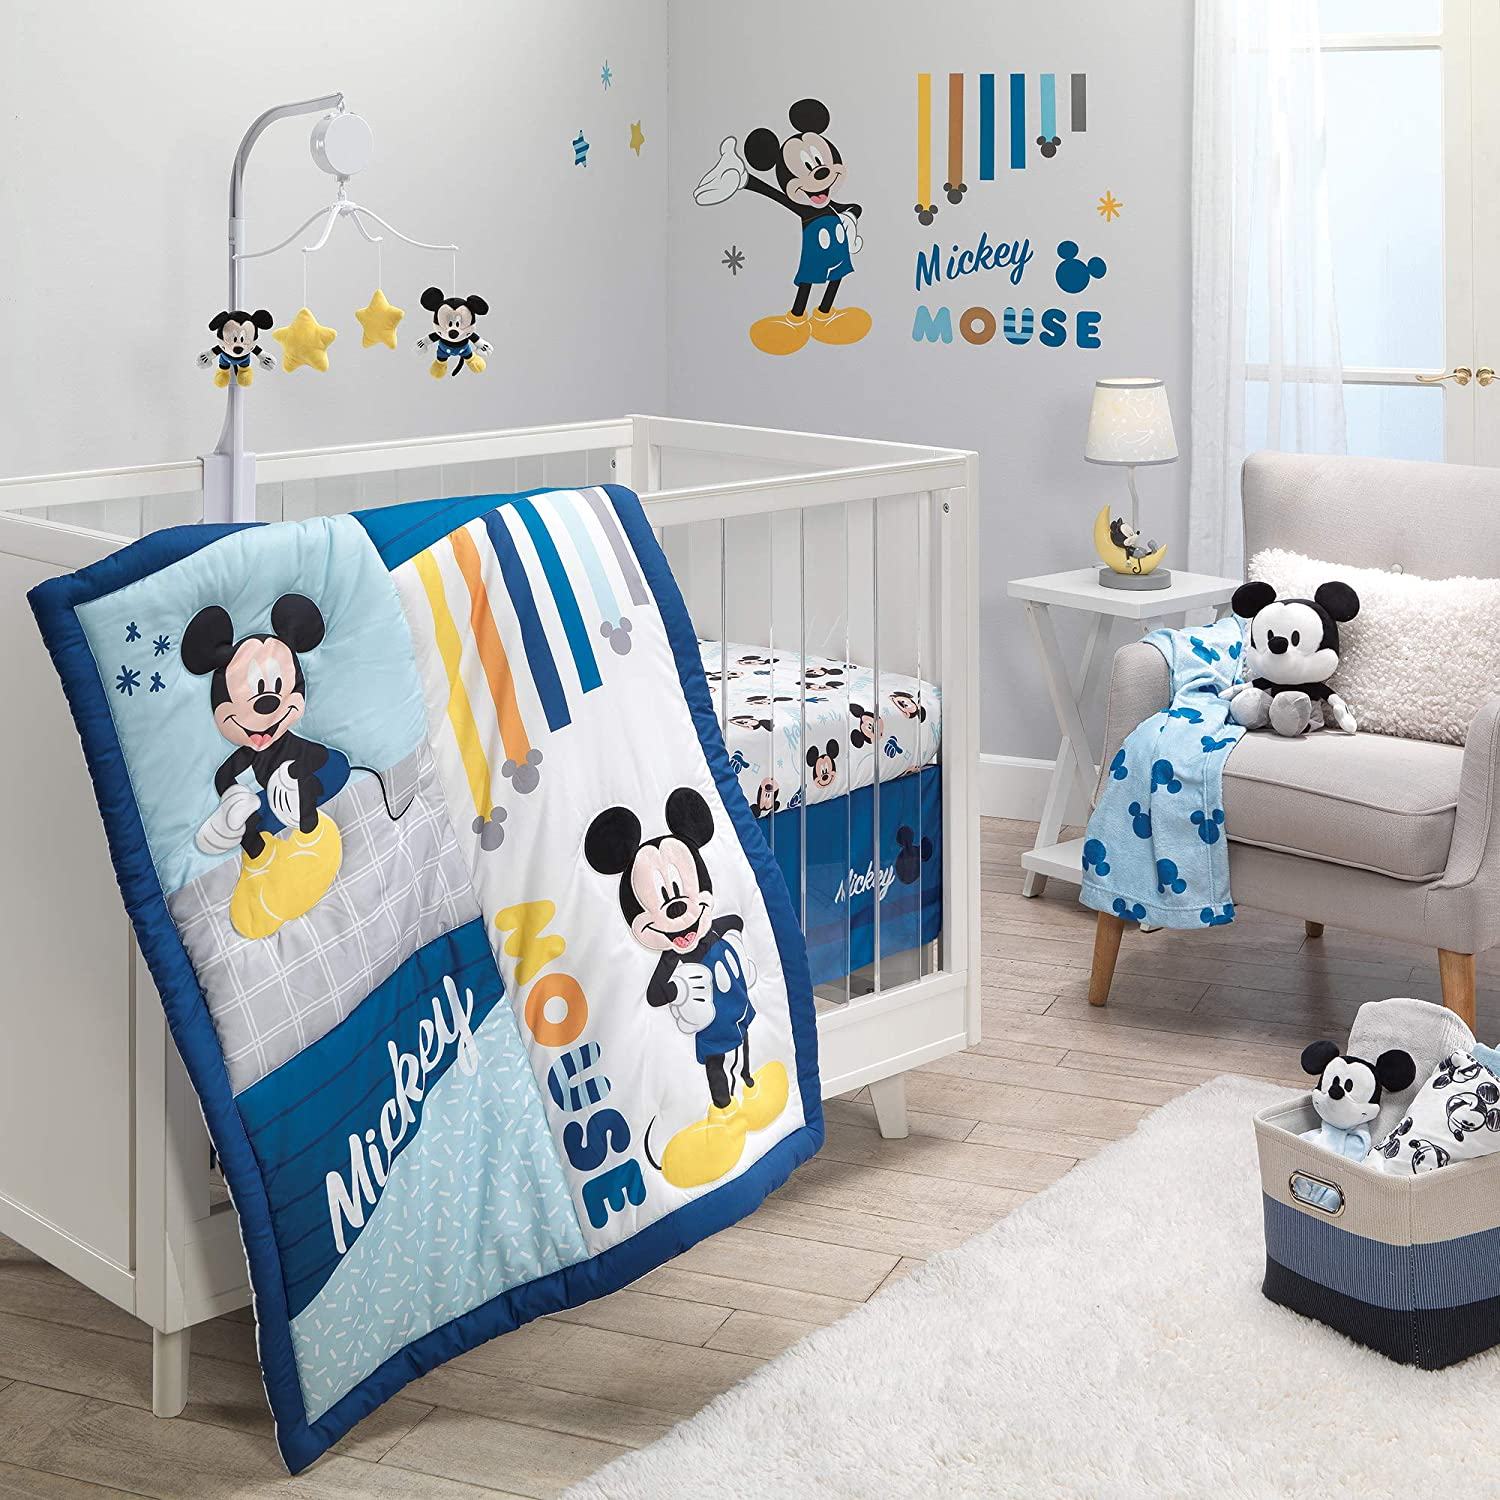 Lambs & Ivy Disney Baby Forever Mickey Mouse 3-Piece Blue Crib Bedding Set